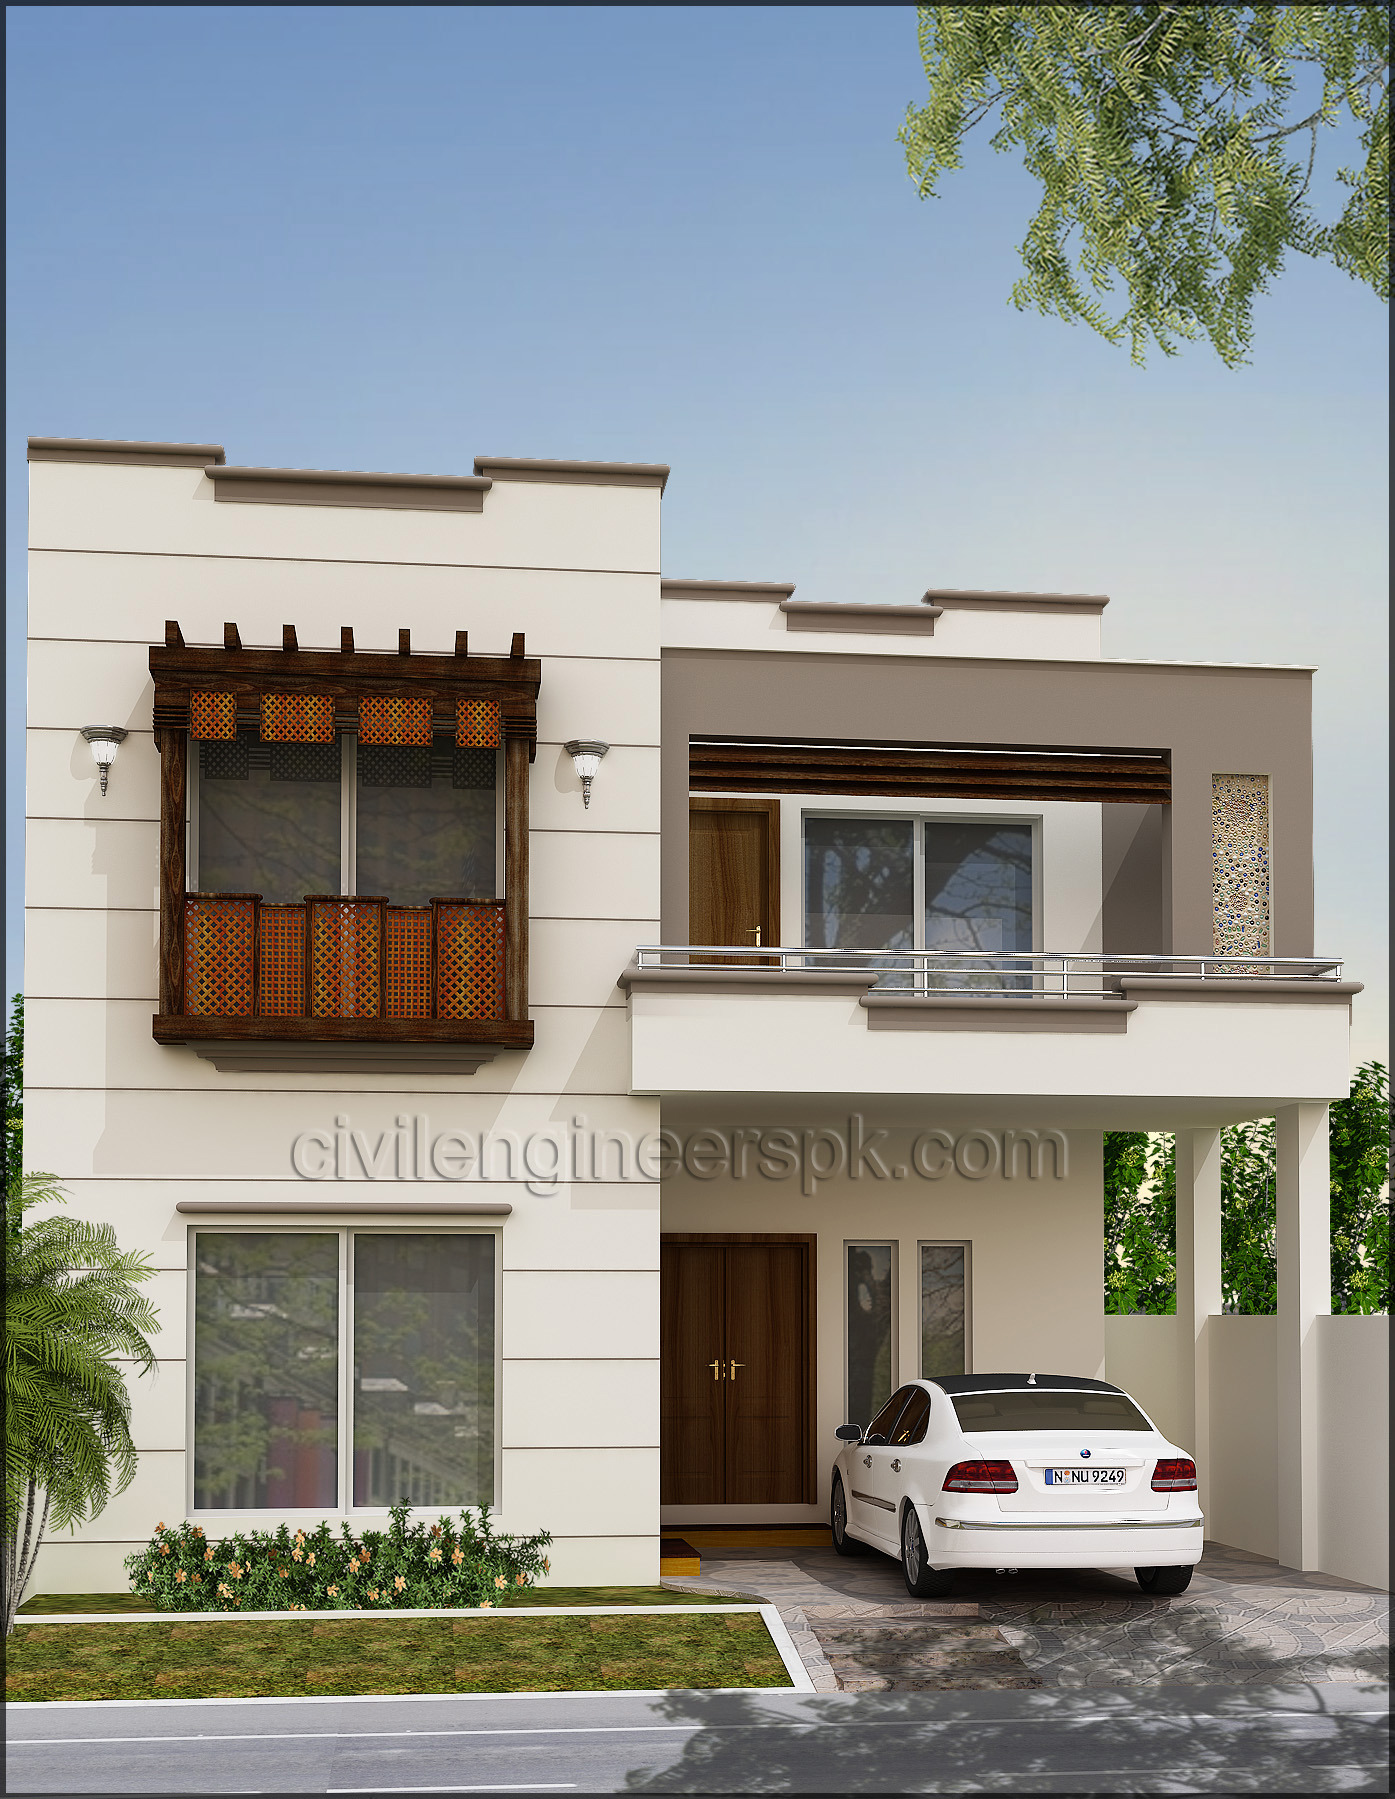 Front View Of A Simple House Unique Front Views Civil Engineers Pk